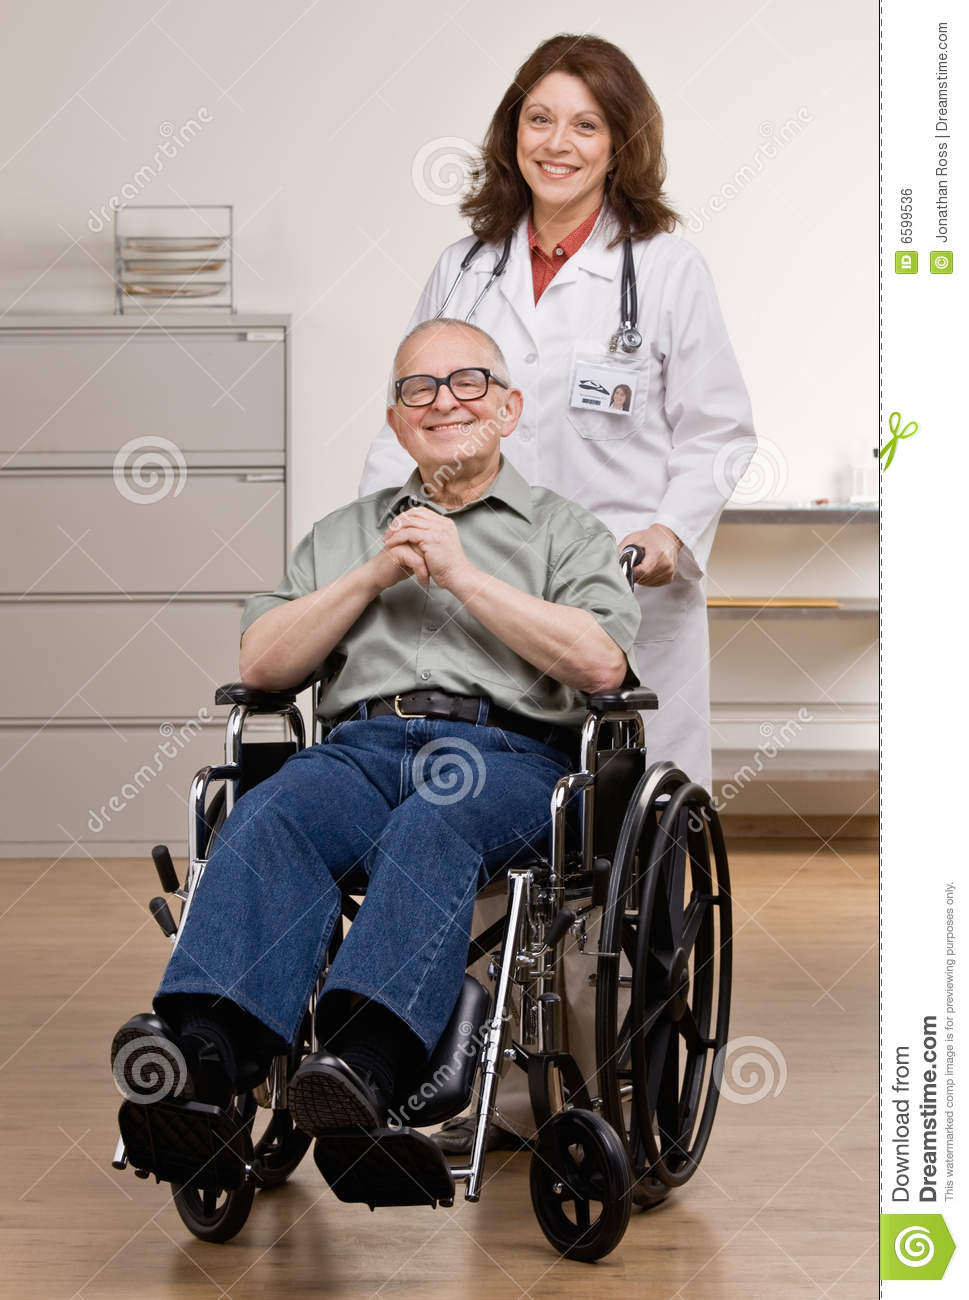 senior citizen chair cover vinyl doctor pushing disabled patient in wheel royalty free stock image - image: 6599536